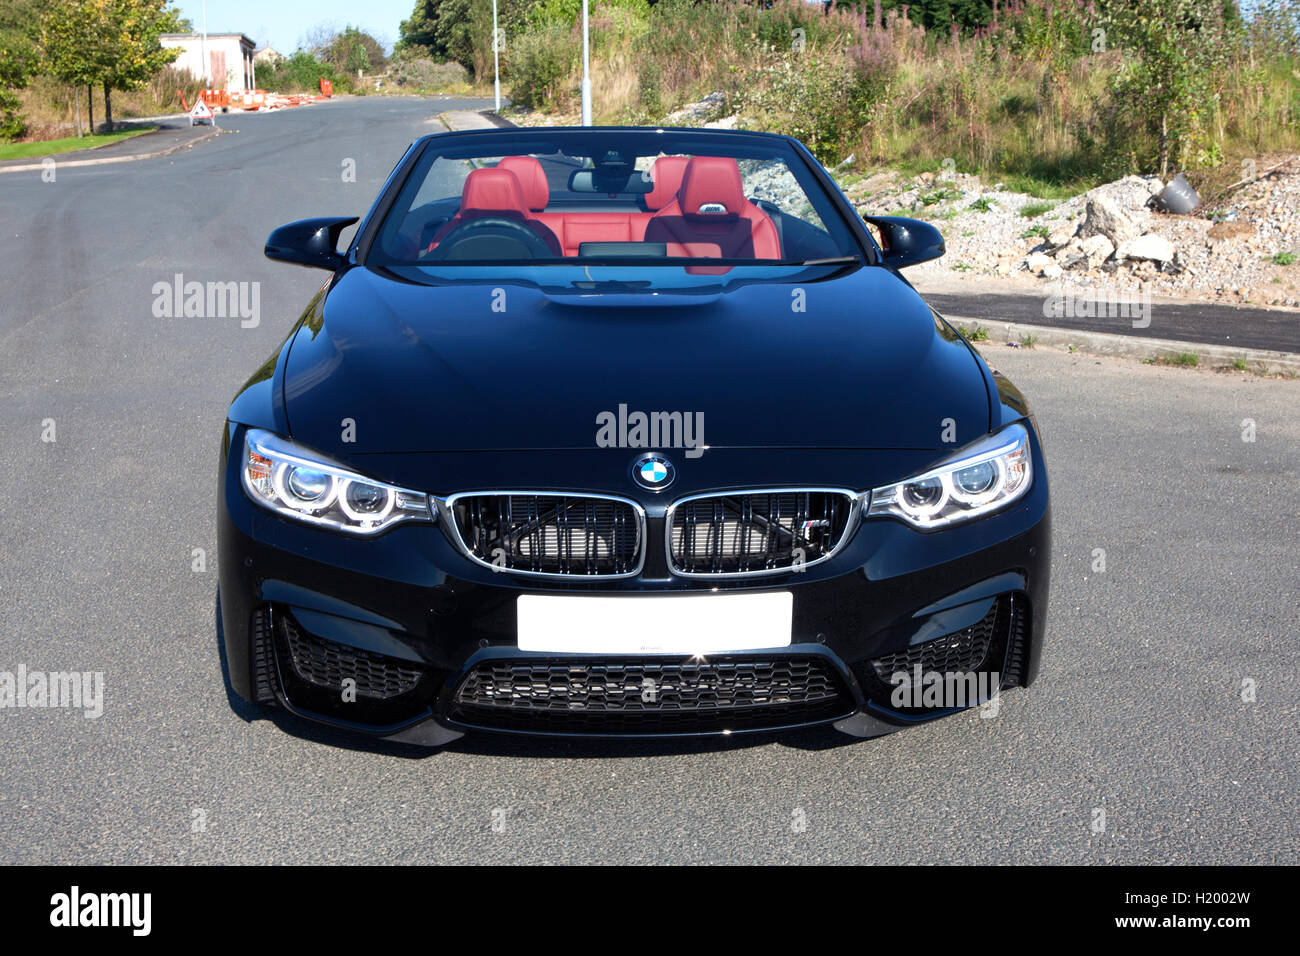 black f83 2016 bmw m4 convertible 2 door high performance sports car stock photo 121701969 alamy. Black Bedroom Furniture Sets. Home Design Ideas